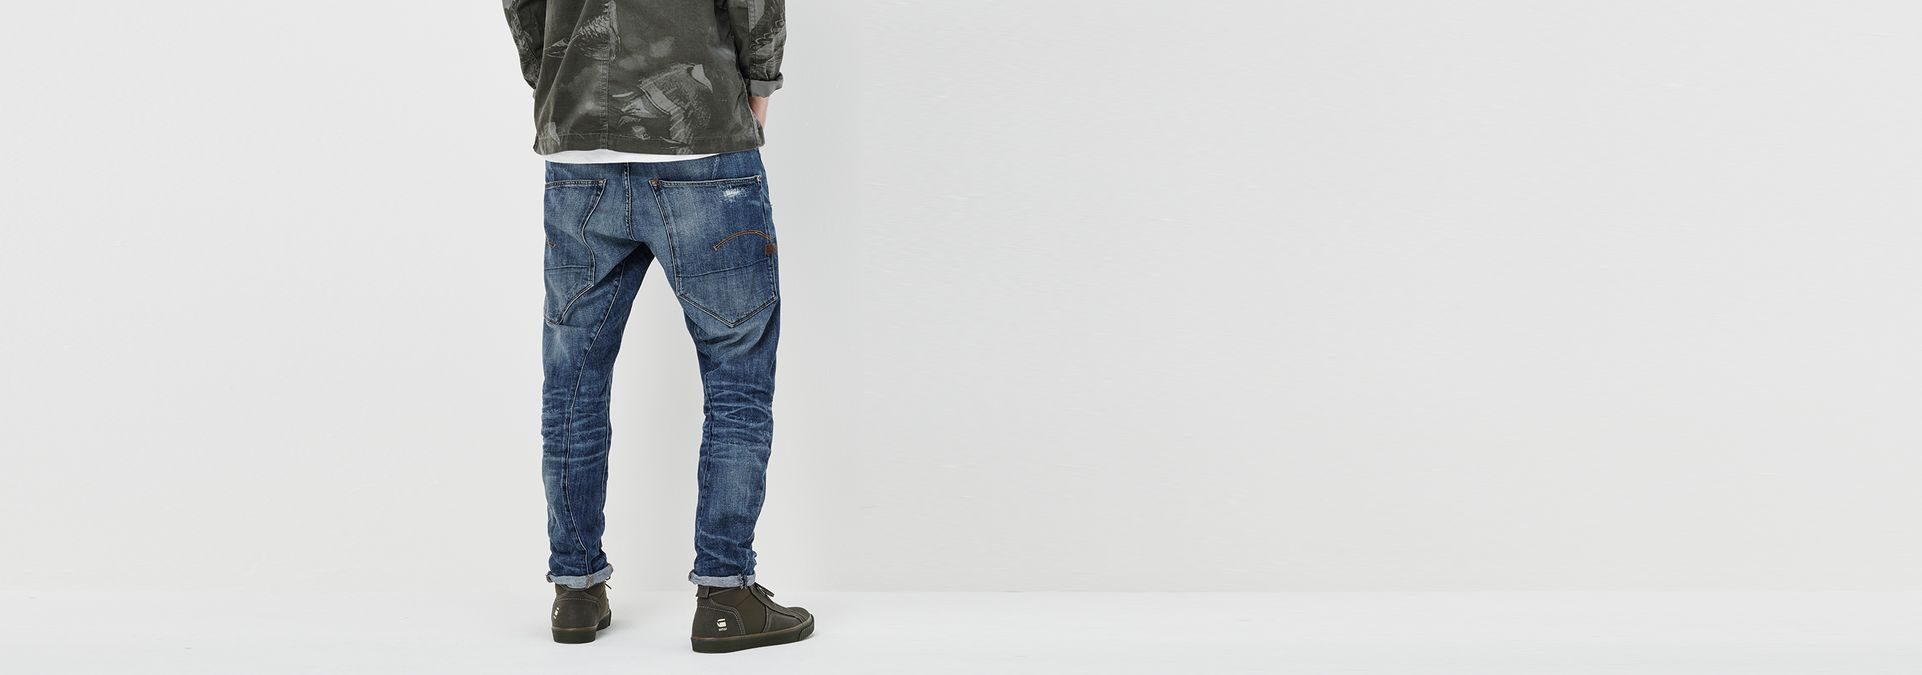 Flights G-Star RAW Type C 3D Loose Tapered Jeans Medium Aged Mens Jeans Buy Jeans for Men COLOUR-medium aged